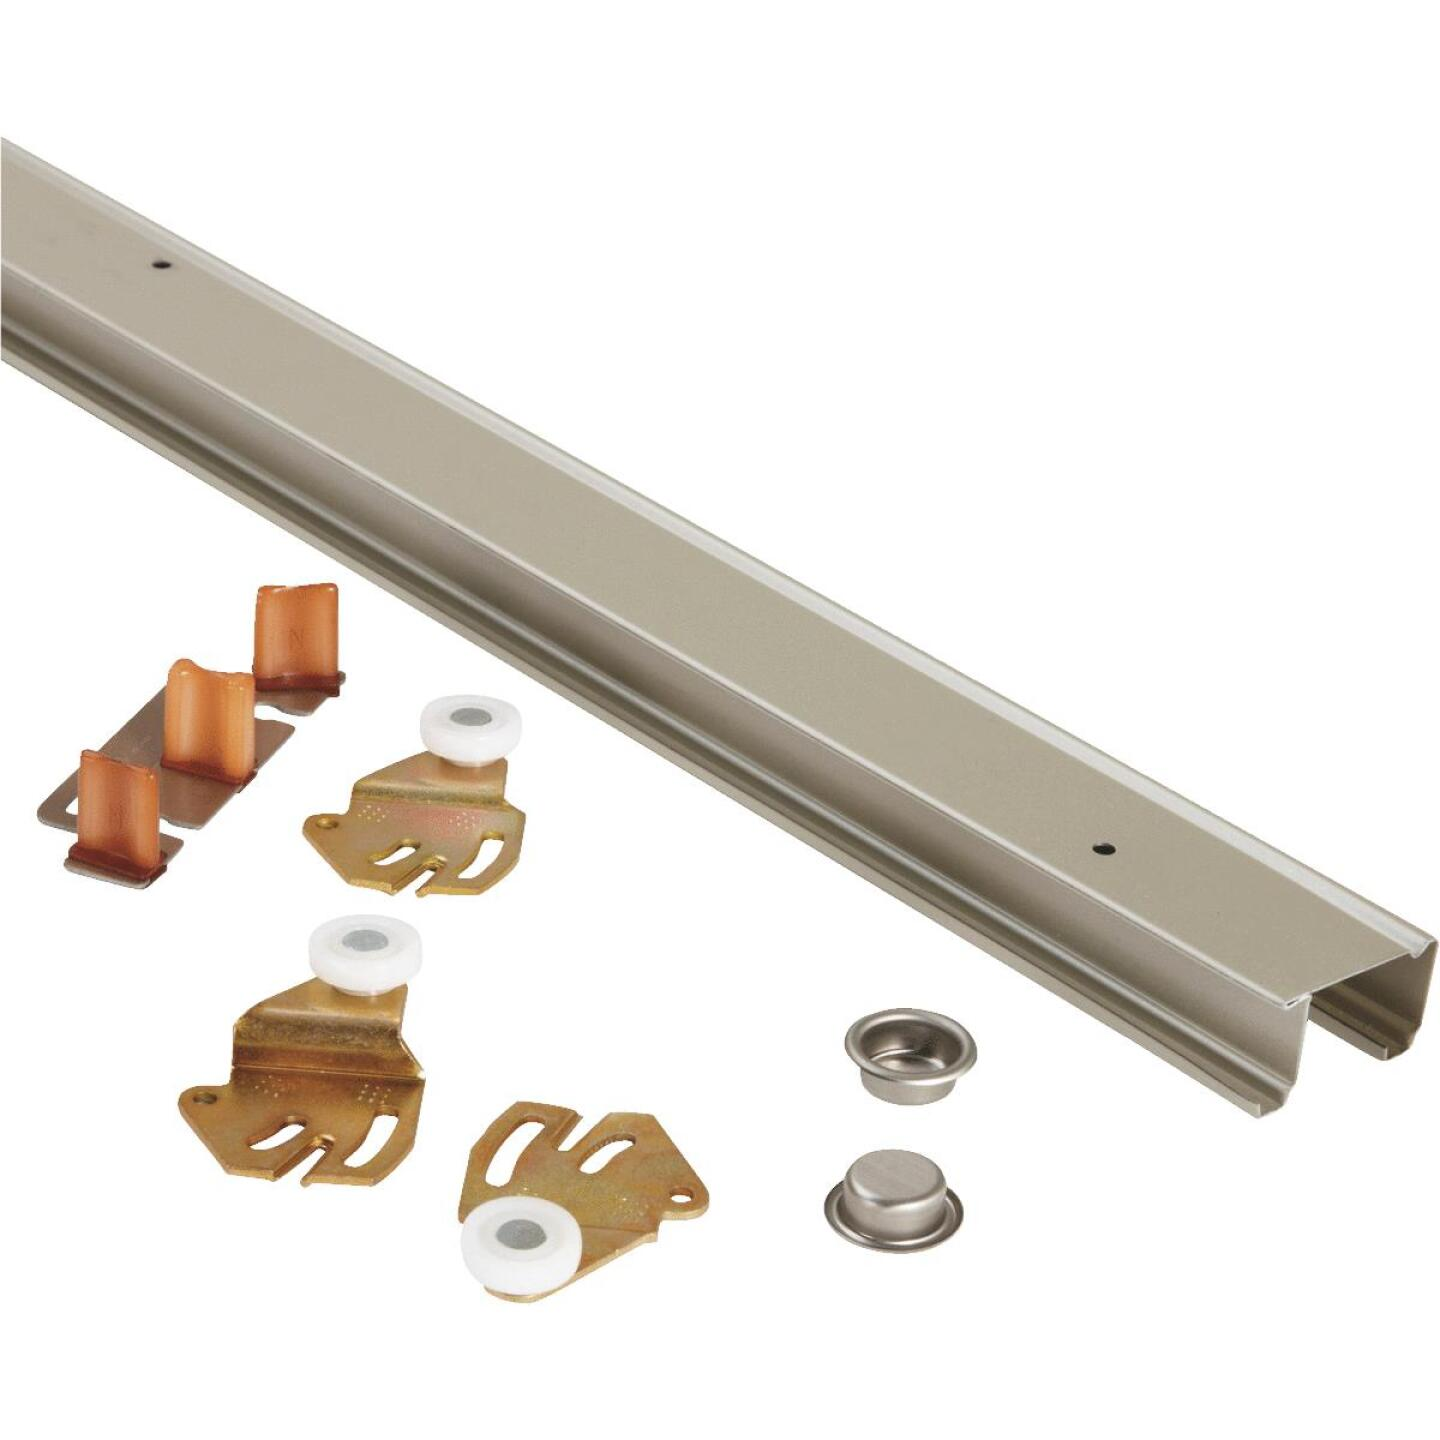 Johnson 48 In. Steel Bypass Door Hardware Set Image 1